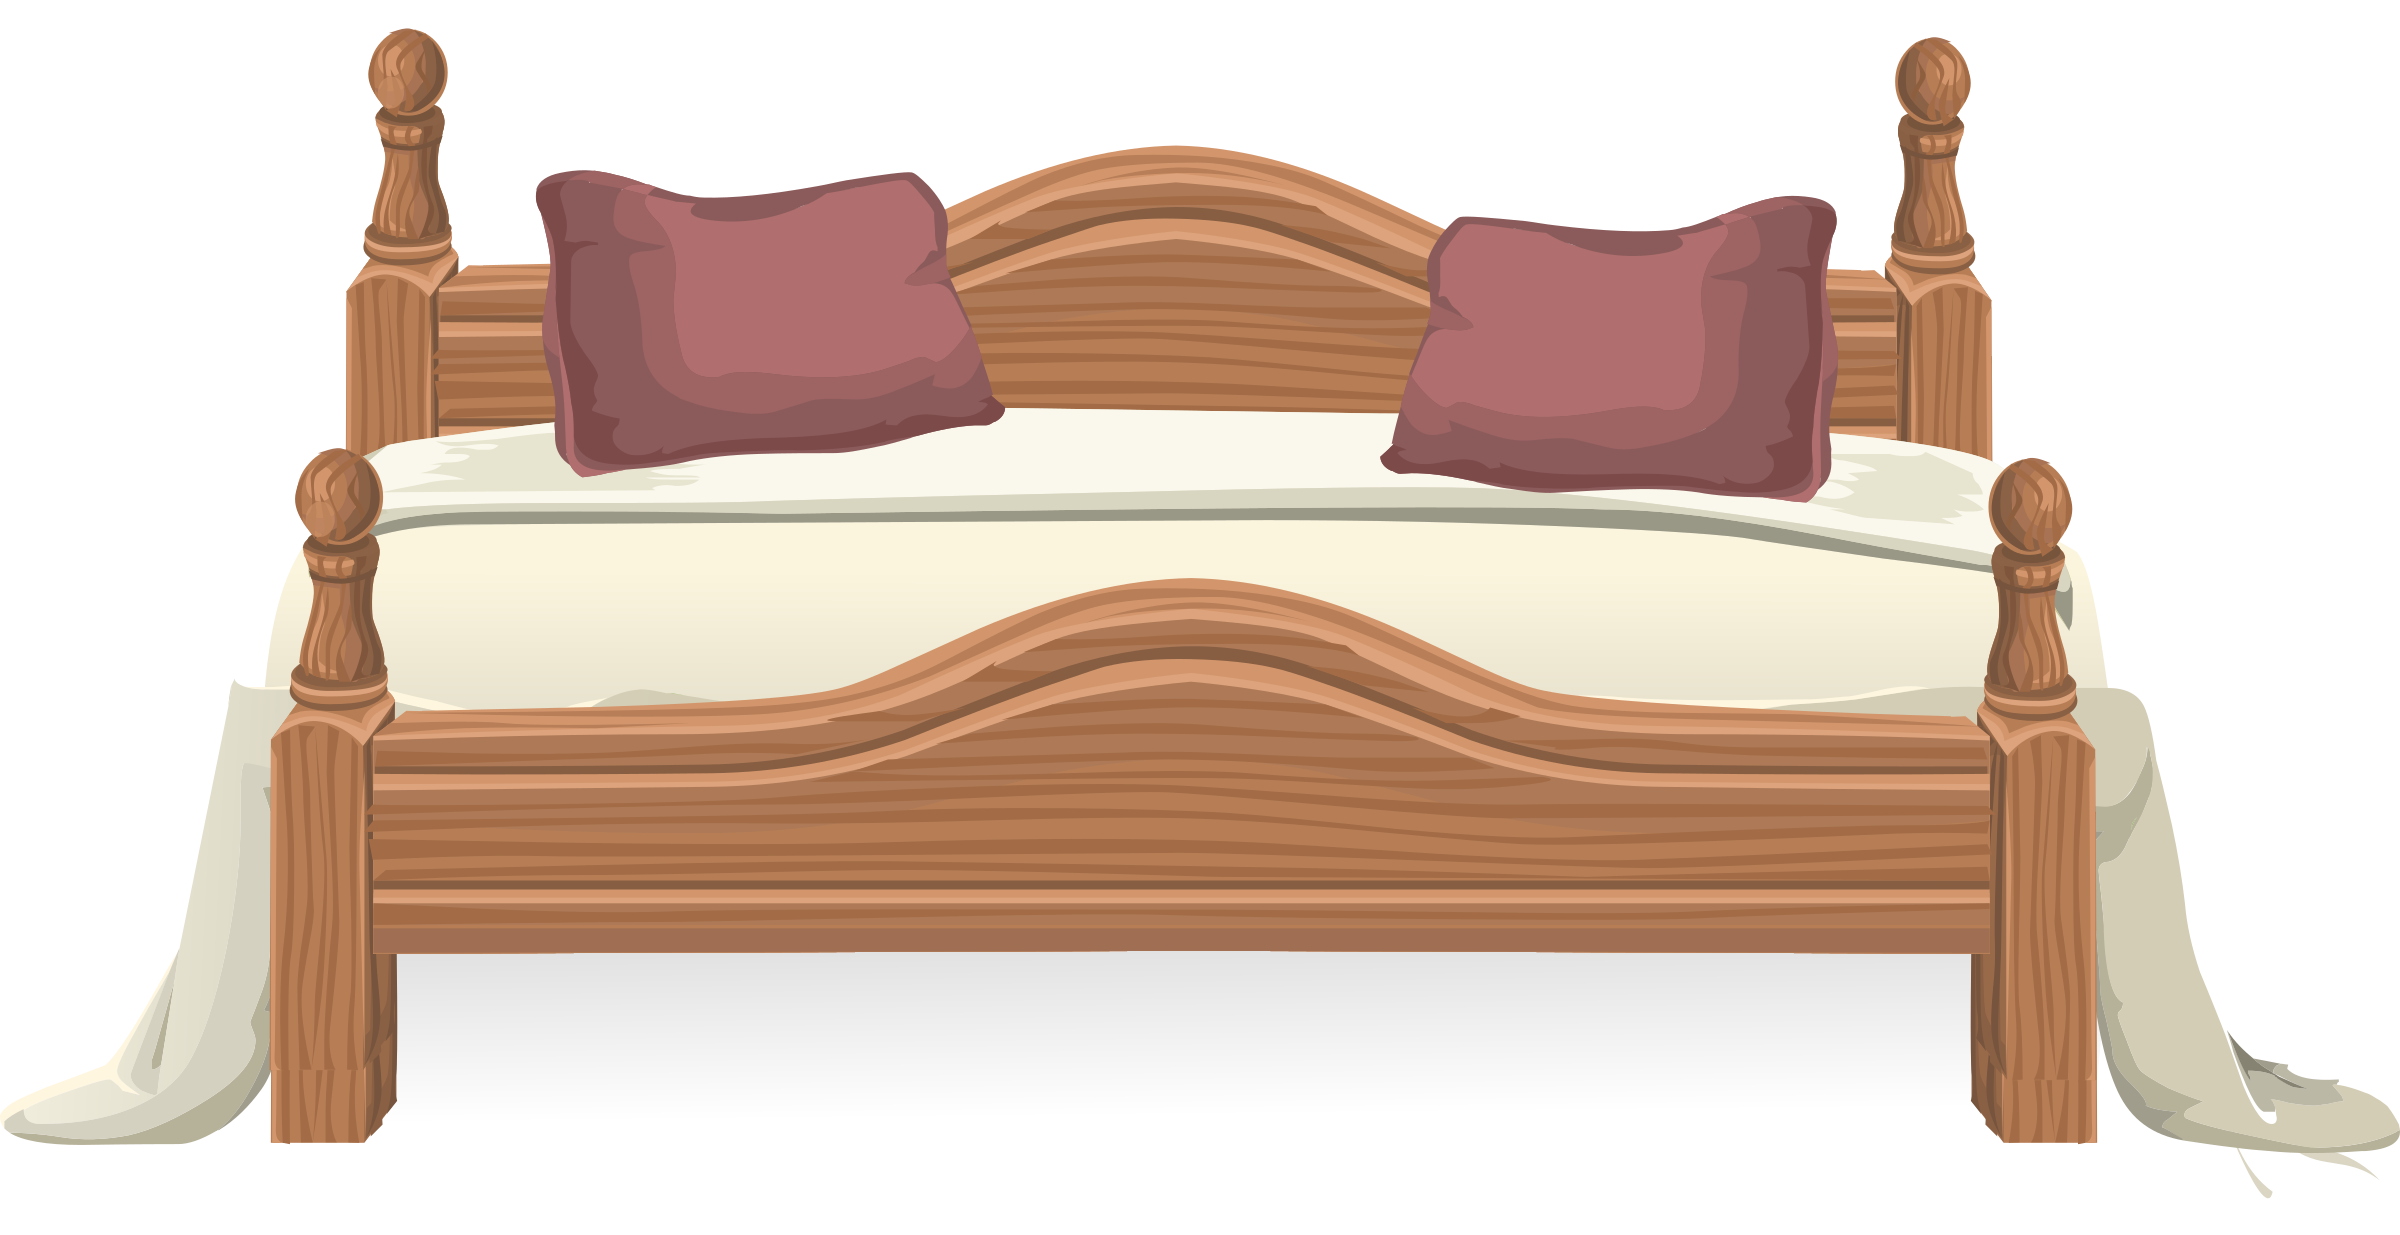 Bed from Glitch by anarres